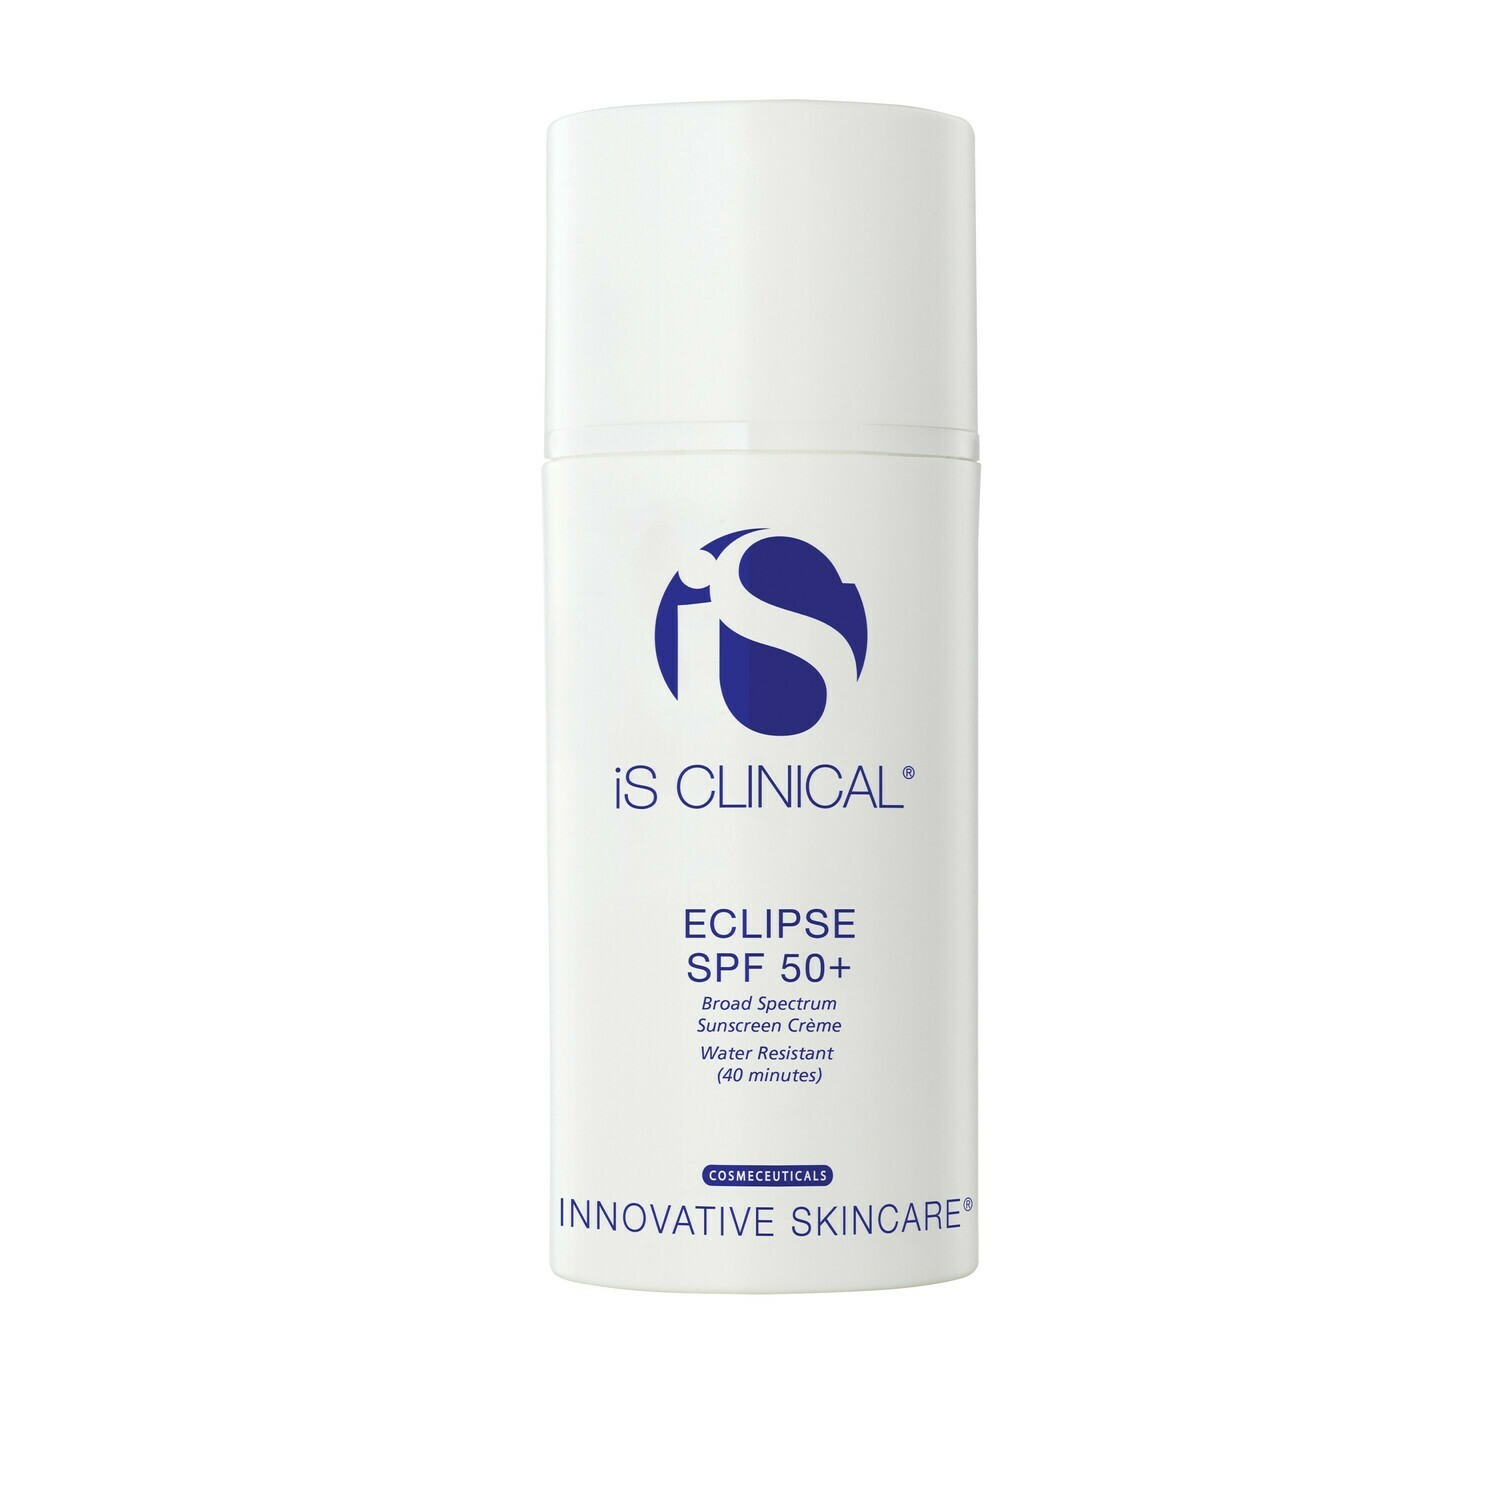 iS CLINICAL ECLIPSE SPF 50+ NON-TINTED